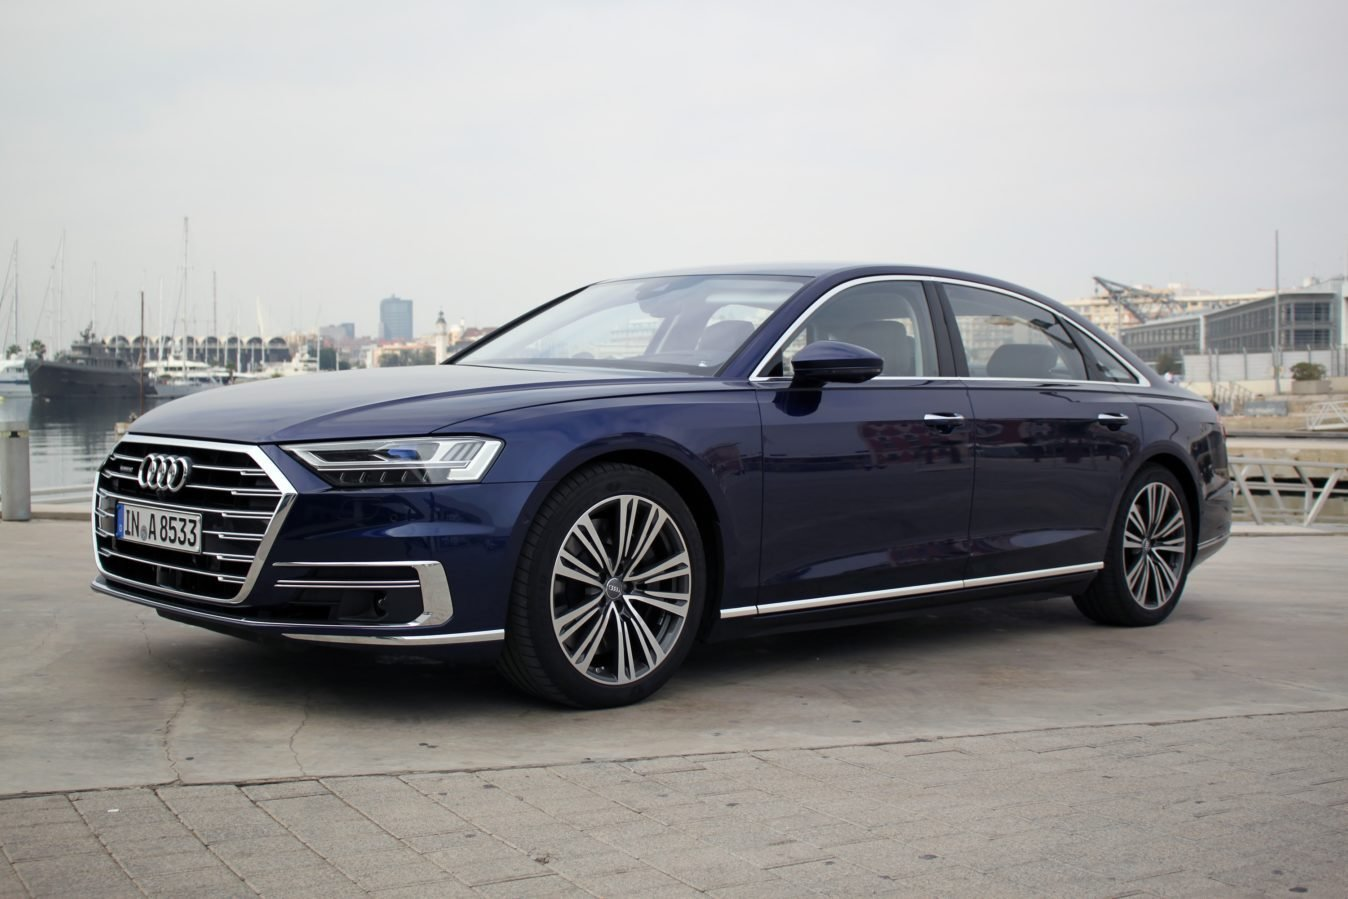 Latest 2019 Audi A6 Side Hd Wallpapers New Car News Free Download